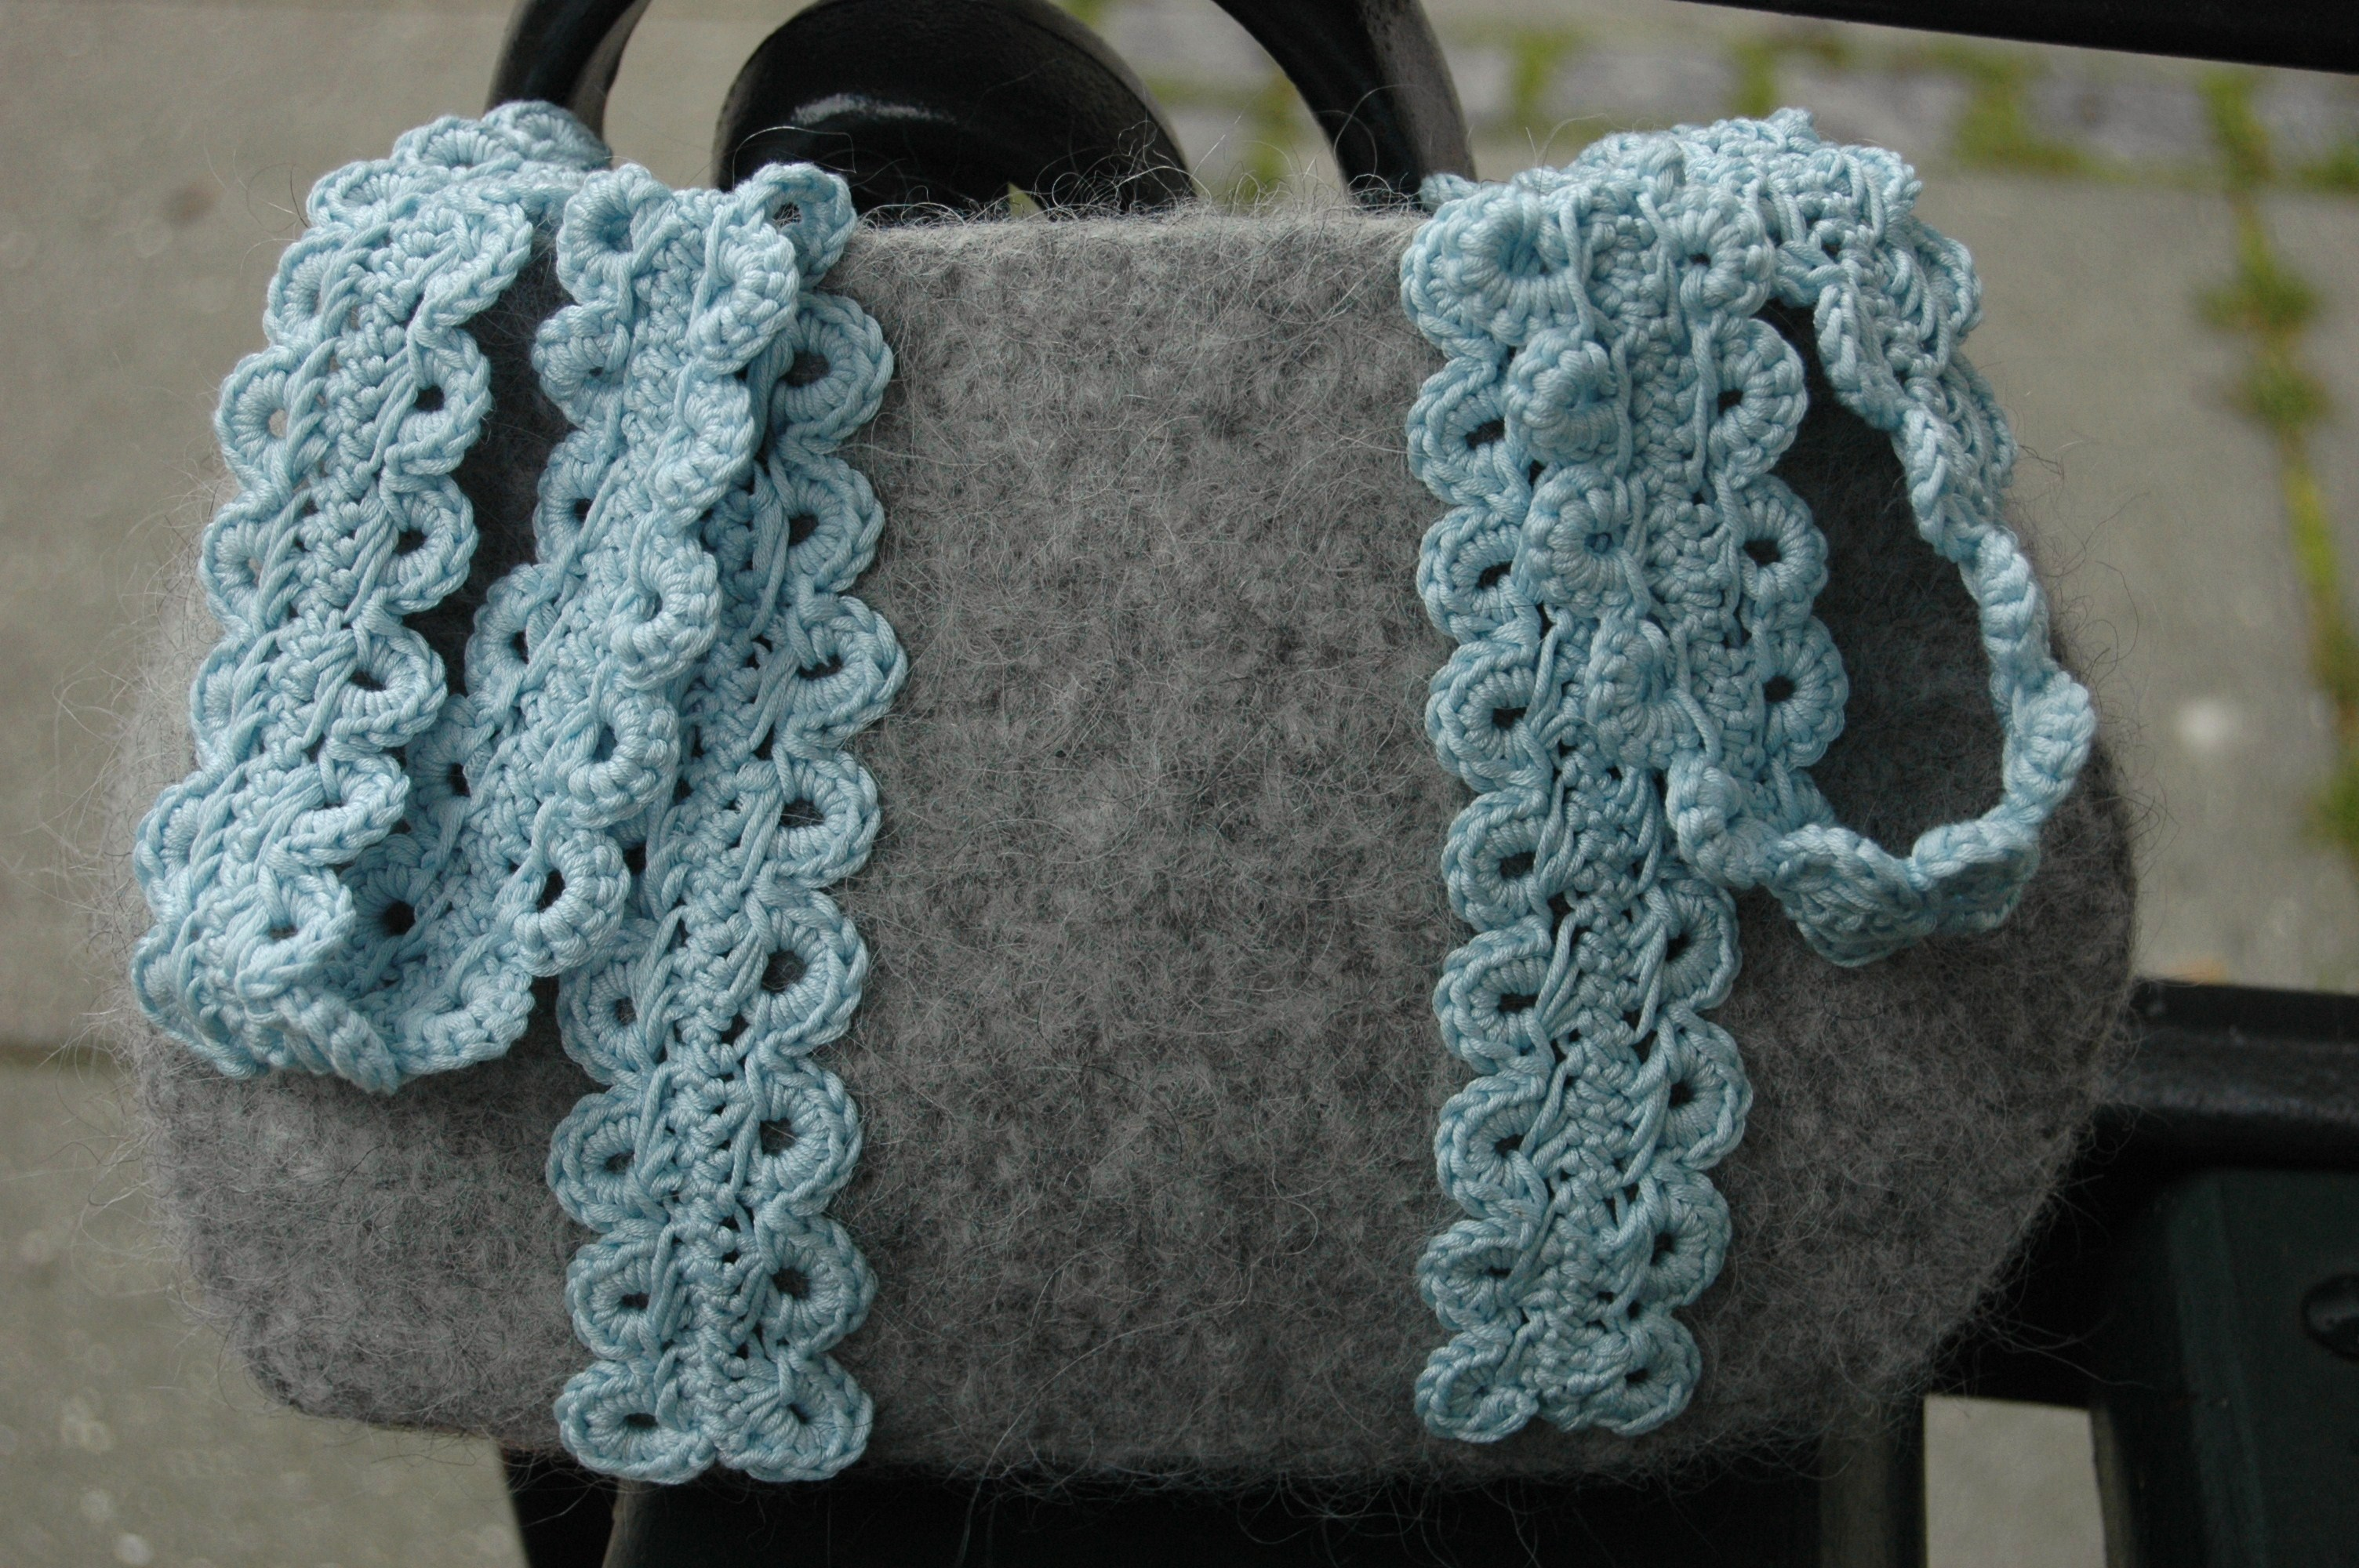 Free Crochet Patterns For Purses Bags : CROCHET FELTED PURSE PATTERNS Free Patterns